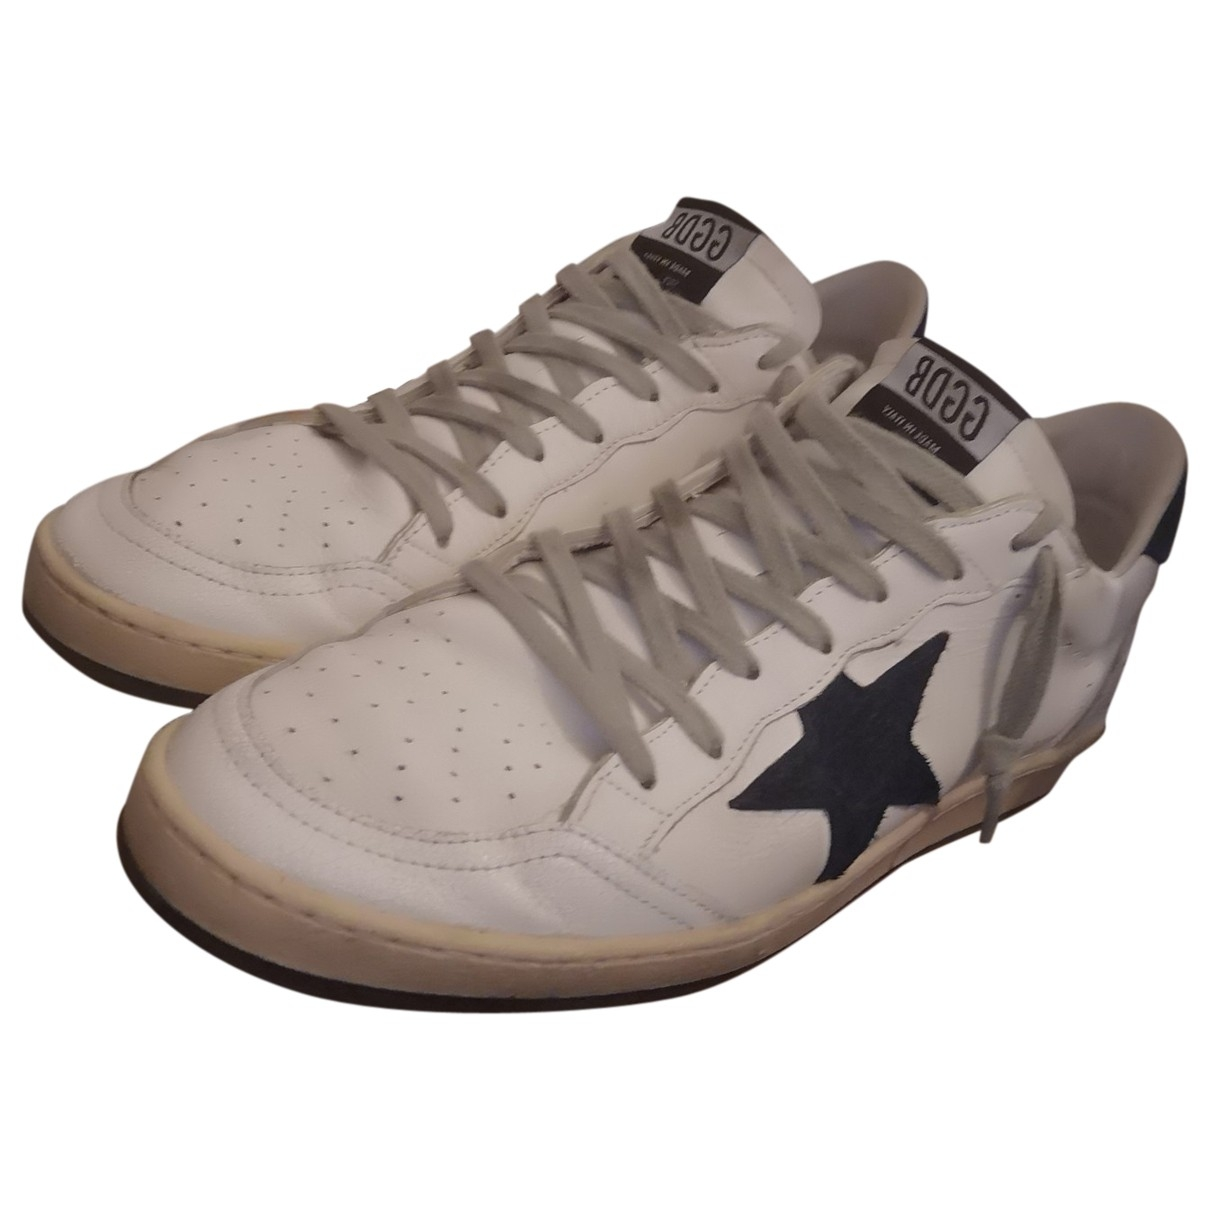 Deportivas Ball Star Golden Goose